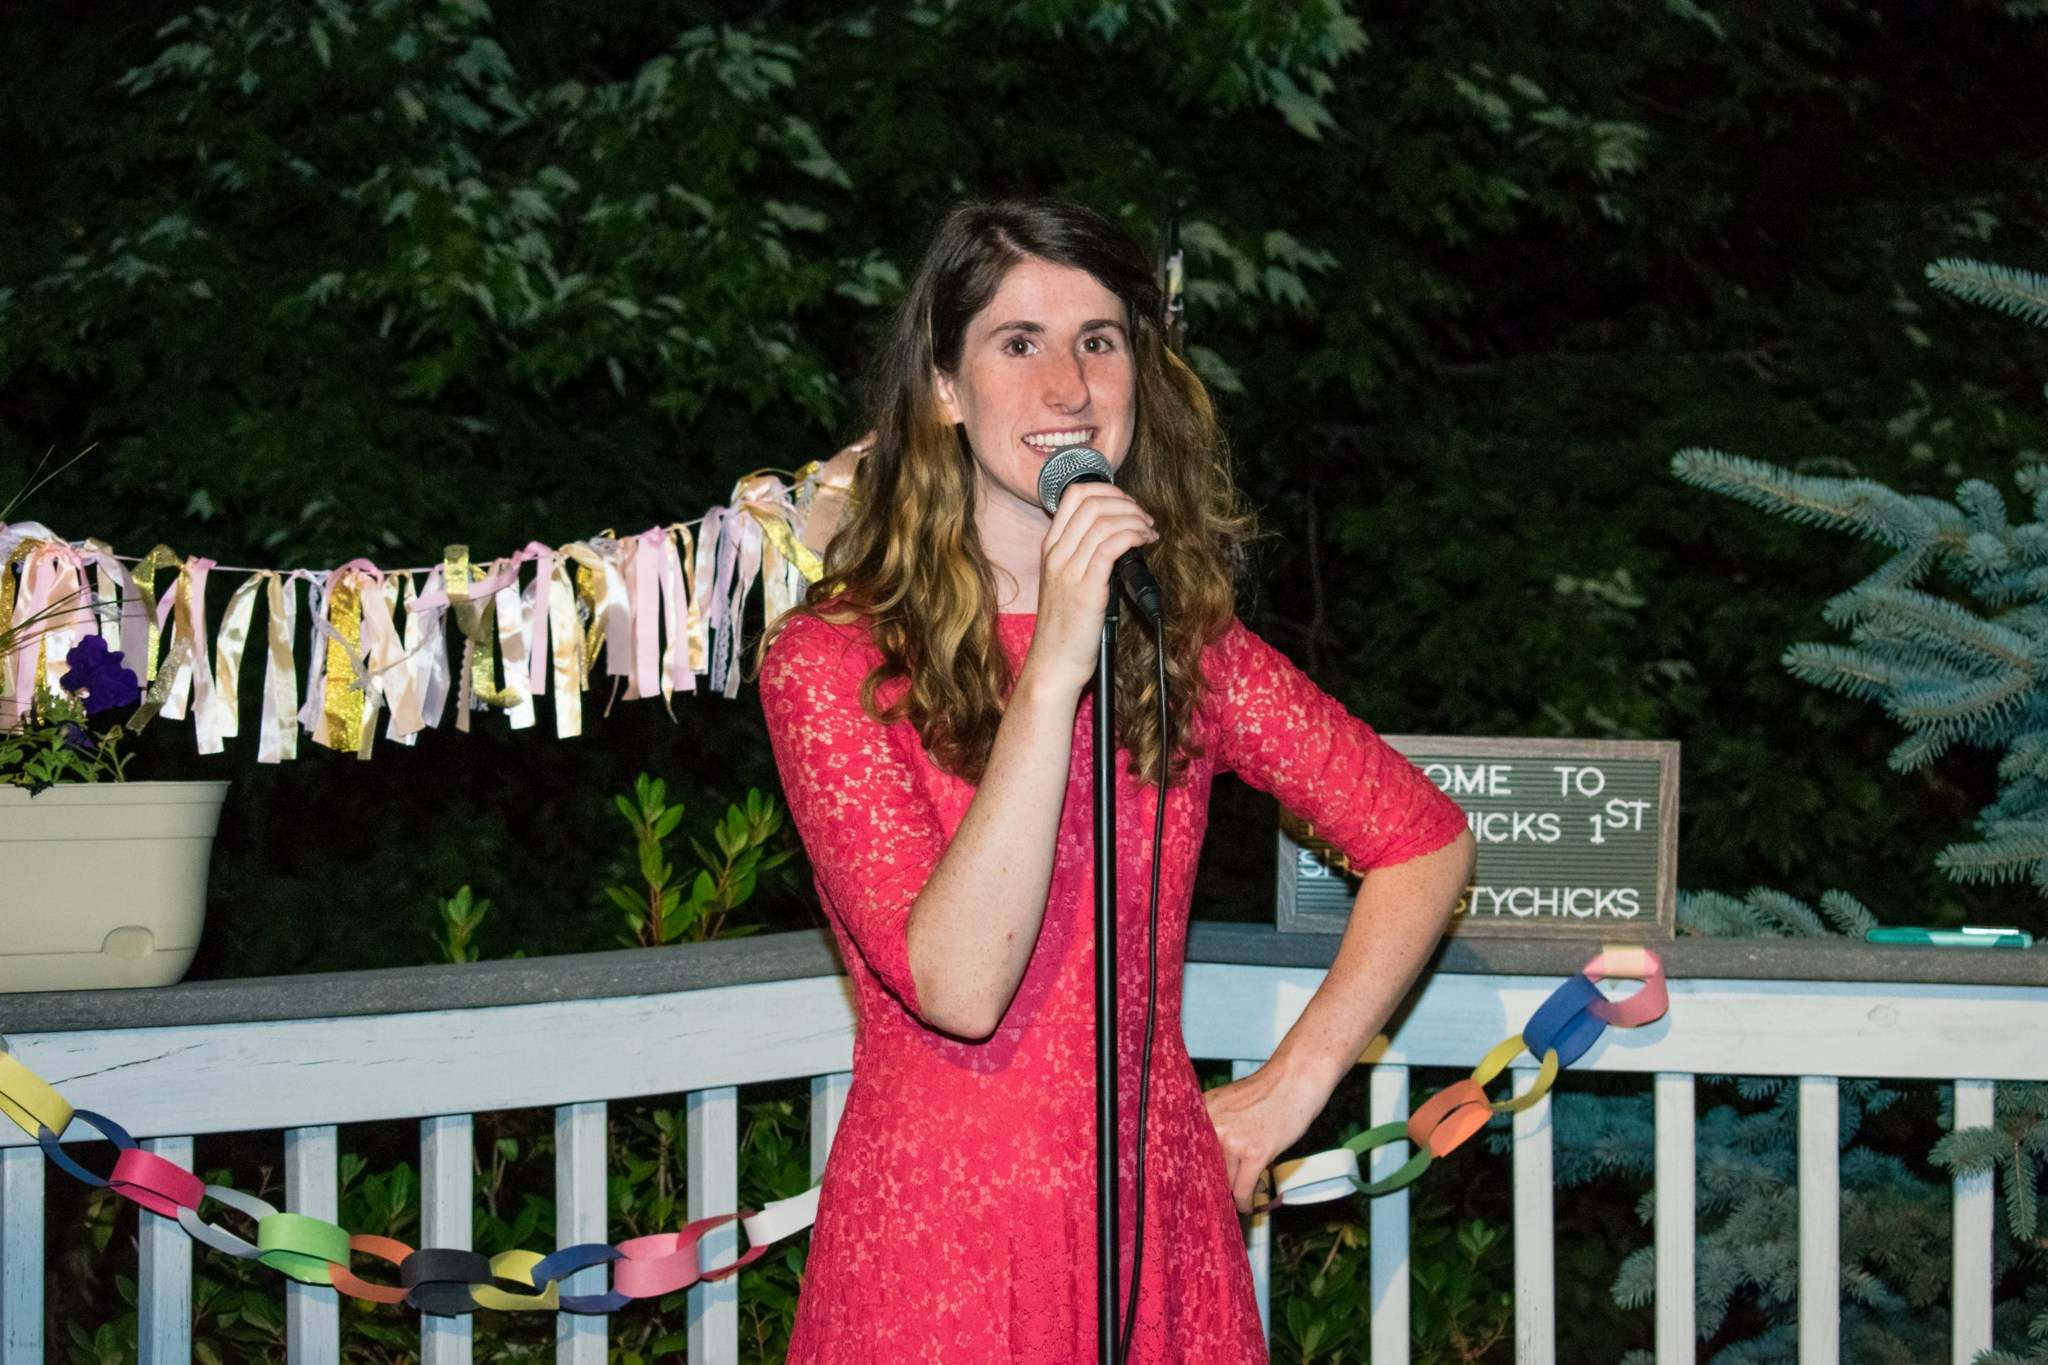 Pop-Up Comedy in July